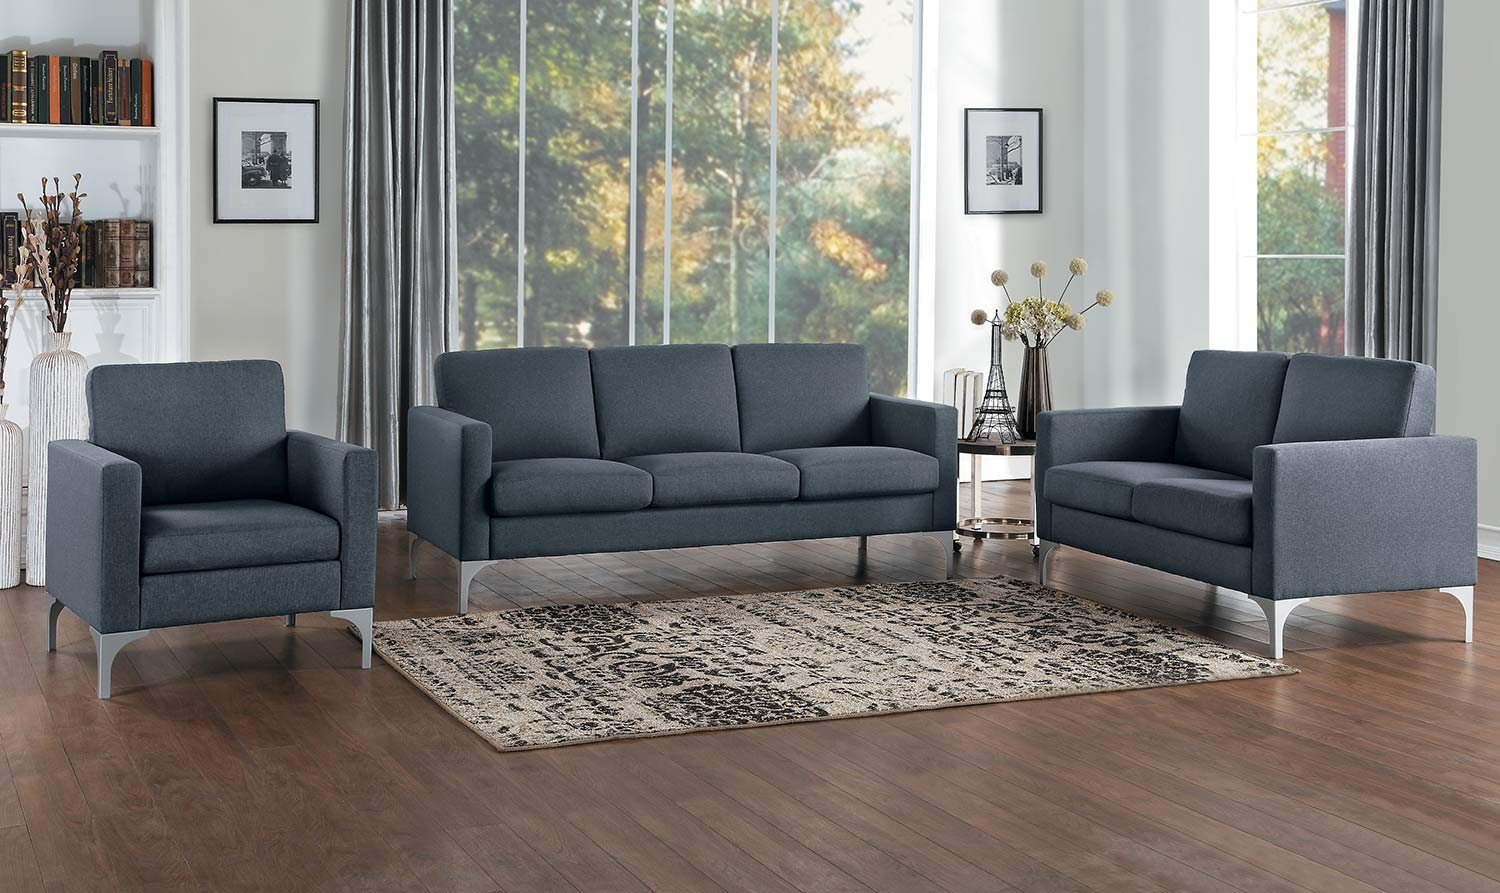 Homelegance Soho Sofa Set - Dark Gray - Brownish Gray